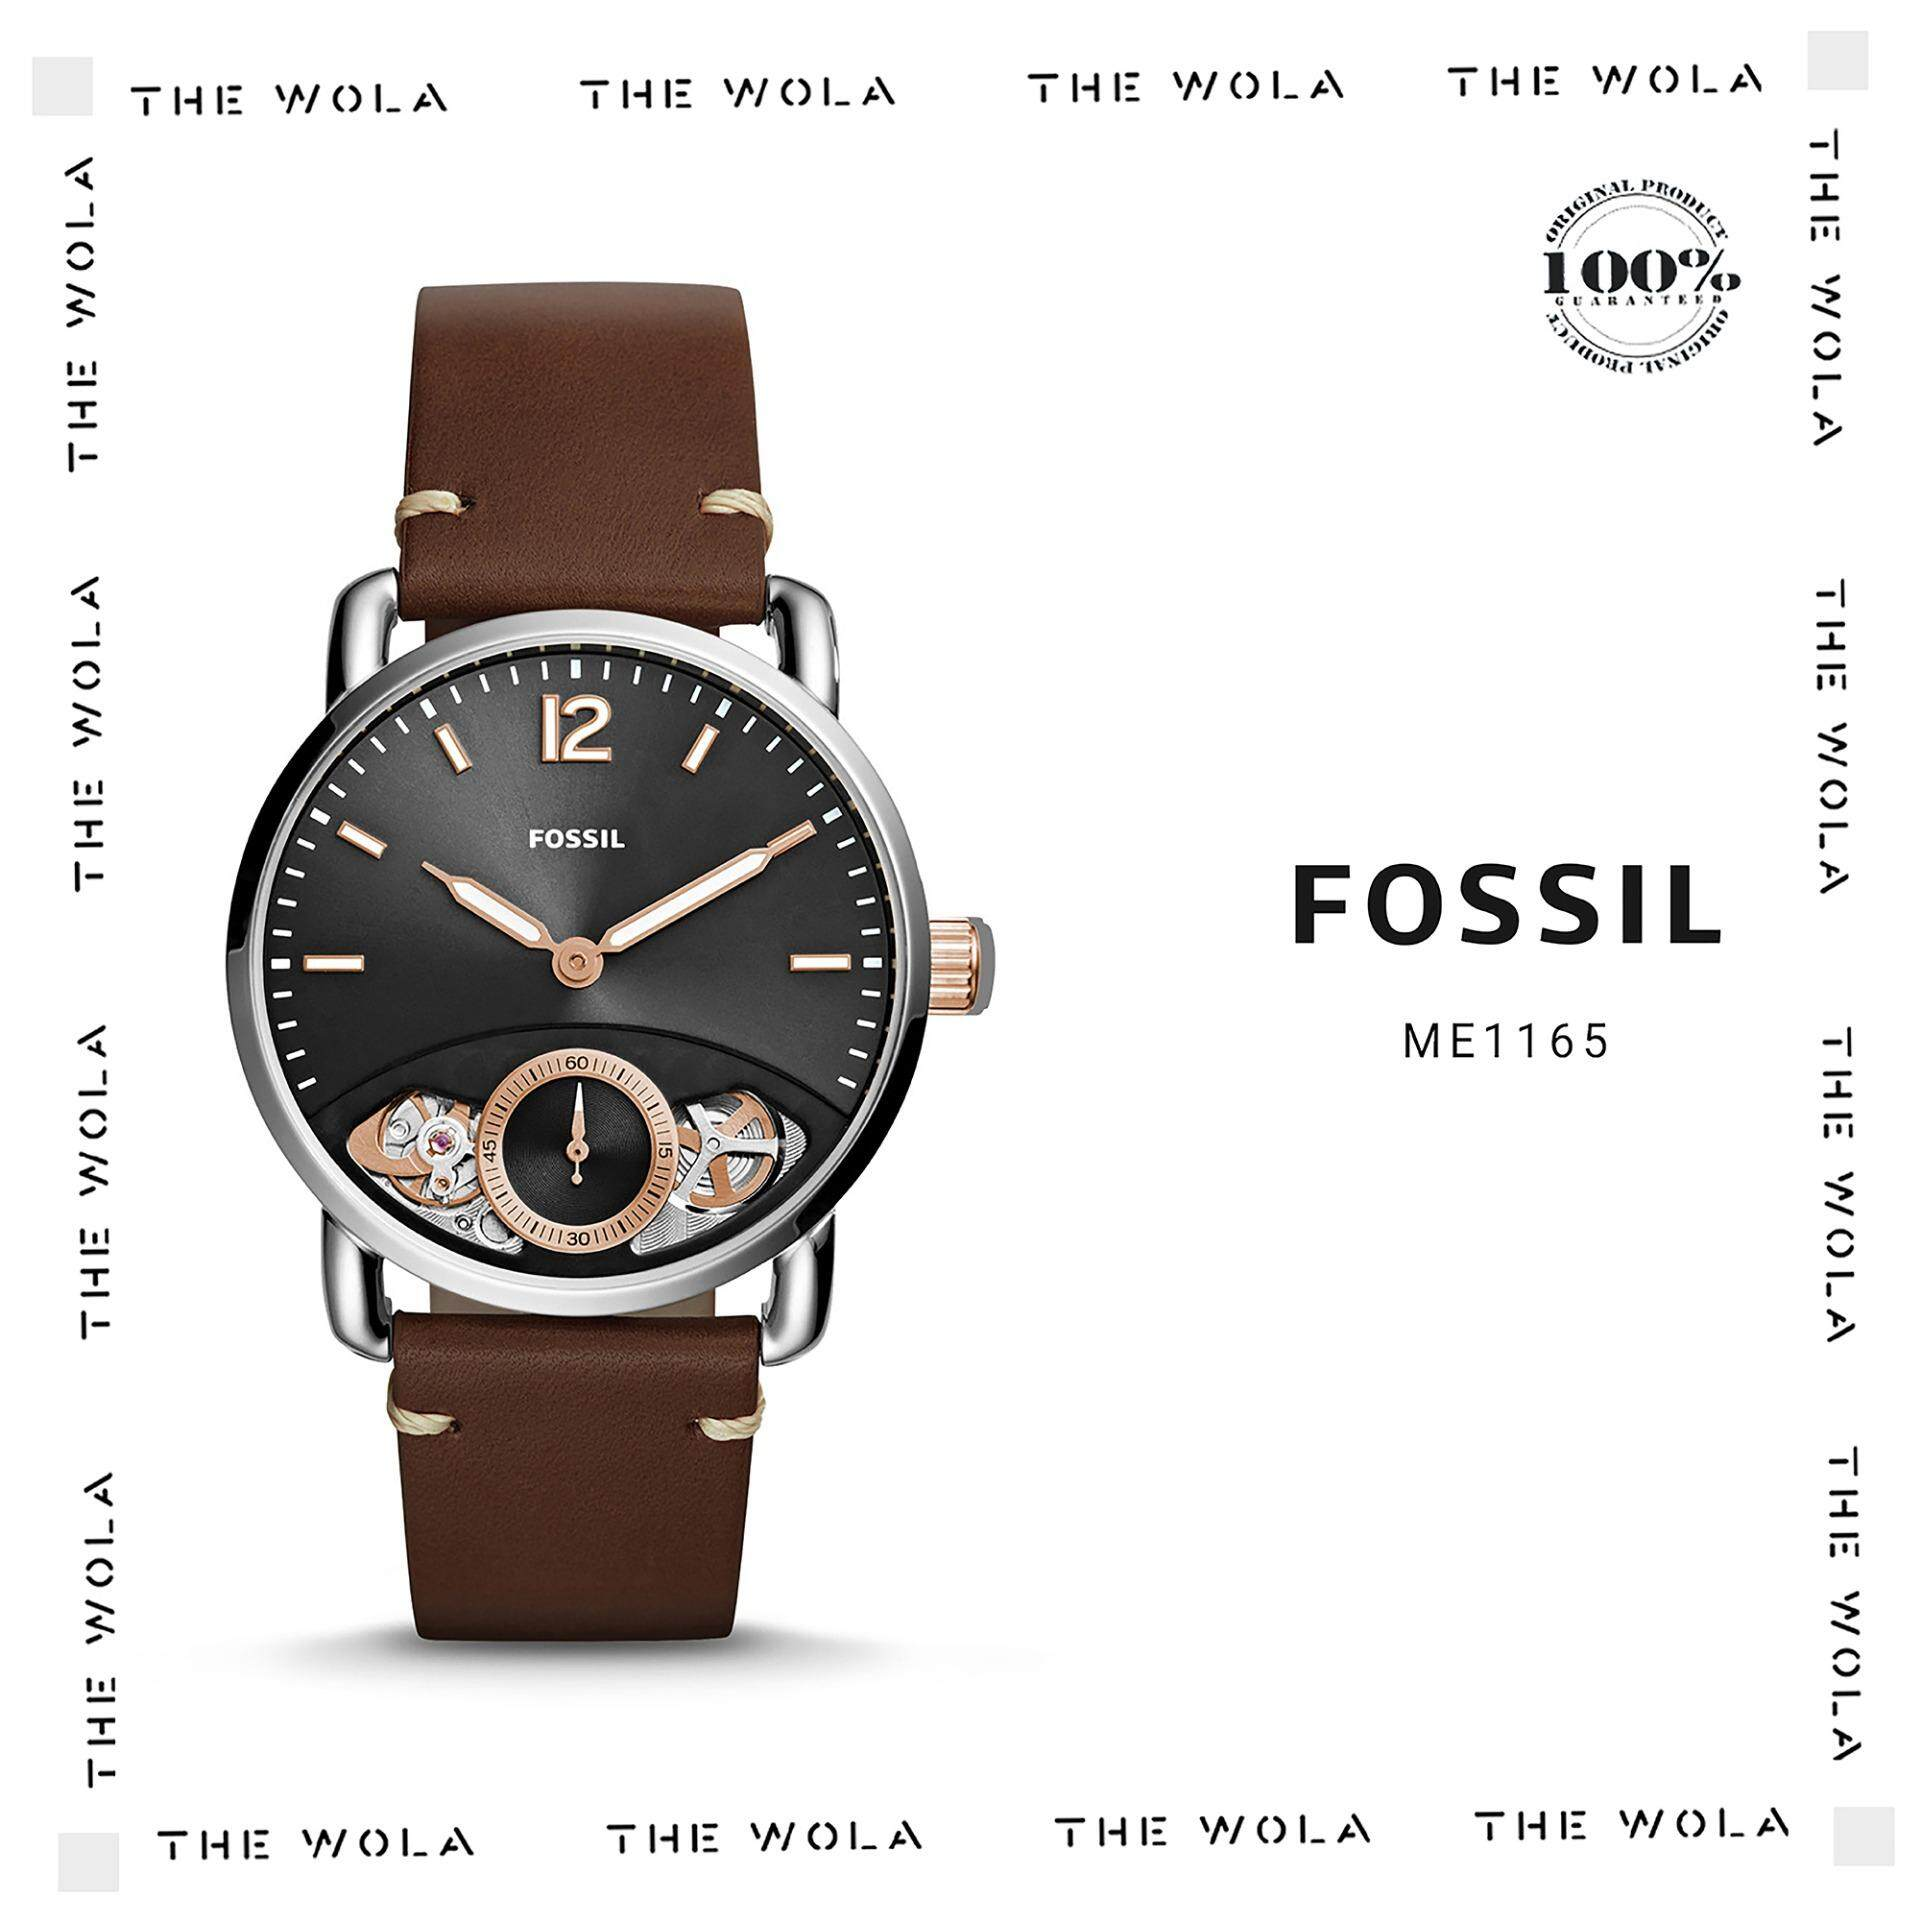 Fossil Products For Men Women The Best Price In Malaysia Fs5118 Jam Tangan Pria Original Automatic Watch Me1165 Genuine 2 Years Warranty